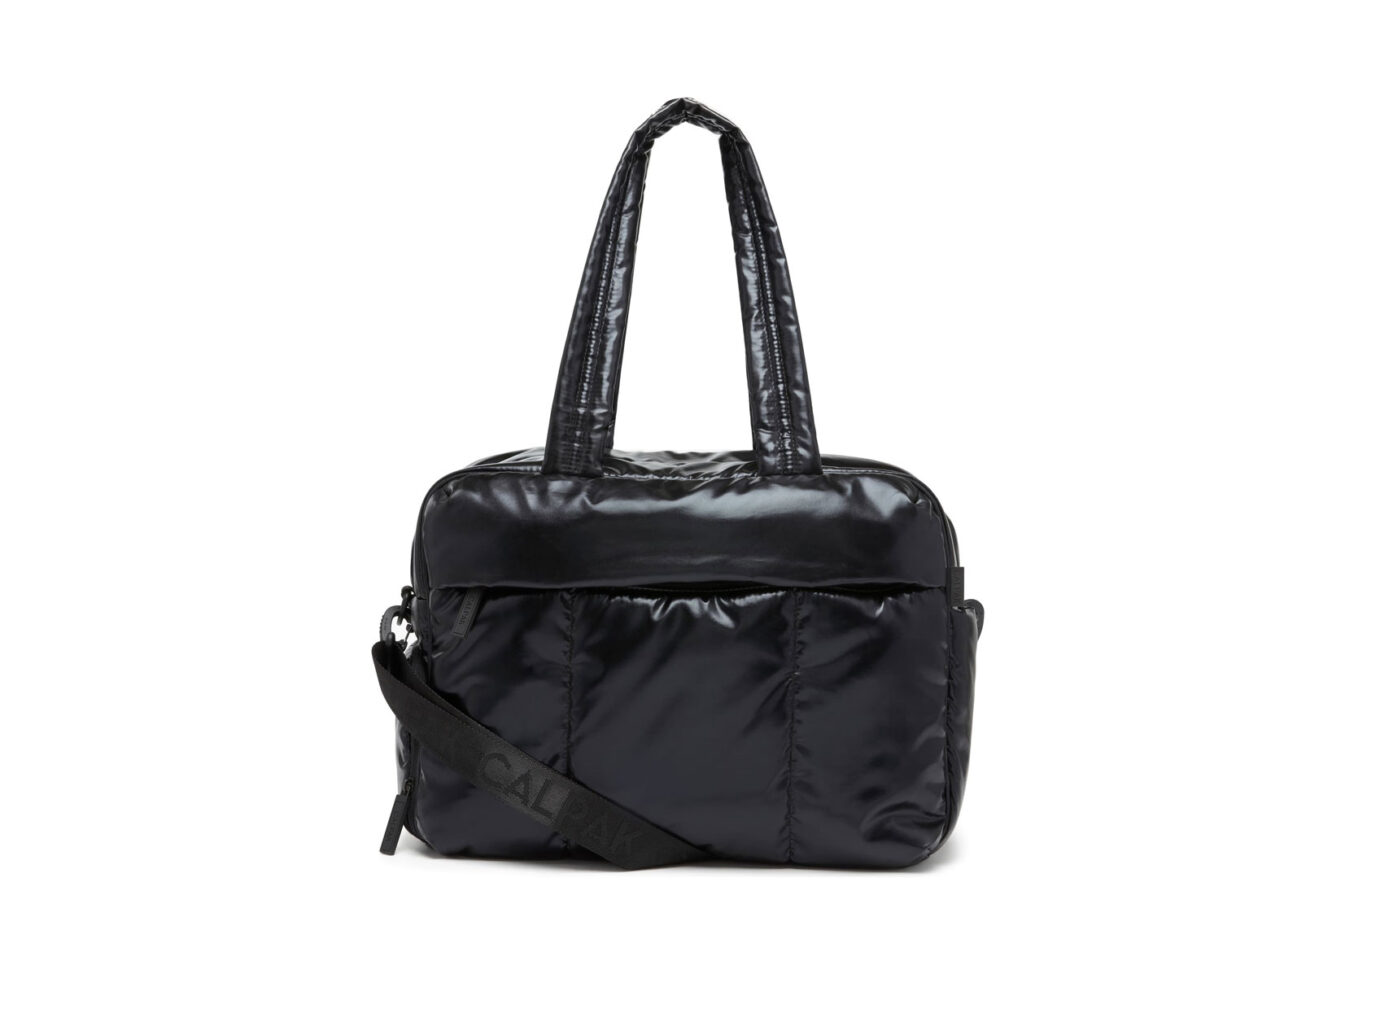 CALPAK, Luka Soft Side Duffle Bag, Main thumbnail 1, color, BLACK CALPAK, Luka Soft Side Duffle Bag, Alternate thumbnail 2, color, BLACK CALPAK, Luka Soft Side Duffle Bag, Alternate thumbnail 3, color, BLACK CALPAK, Luka Soft Side Duffle Bag, Alternate thumbnail 4, color, BLACK CALPAK, Luka Soft Side Duffle Bag, Alternate thumbnail 5, color, BLACK CALPAK Luka Soft Side Duffle Bag, Main, color, BLACKCALPAK Luka Soft Side Duffle Bag, Main, color, BLACK Luka Soft Side Duffle Bag CALPAK